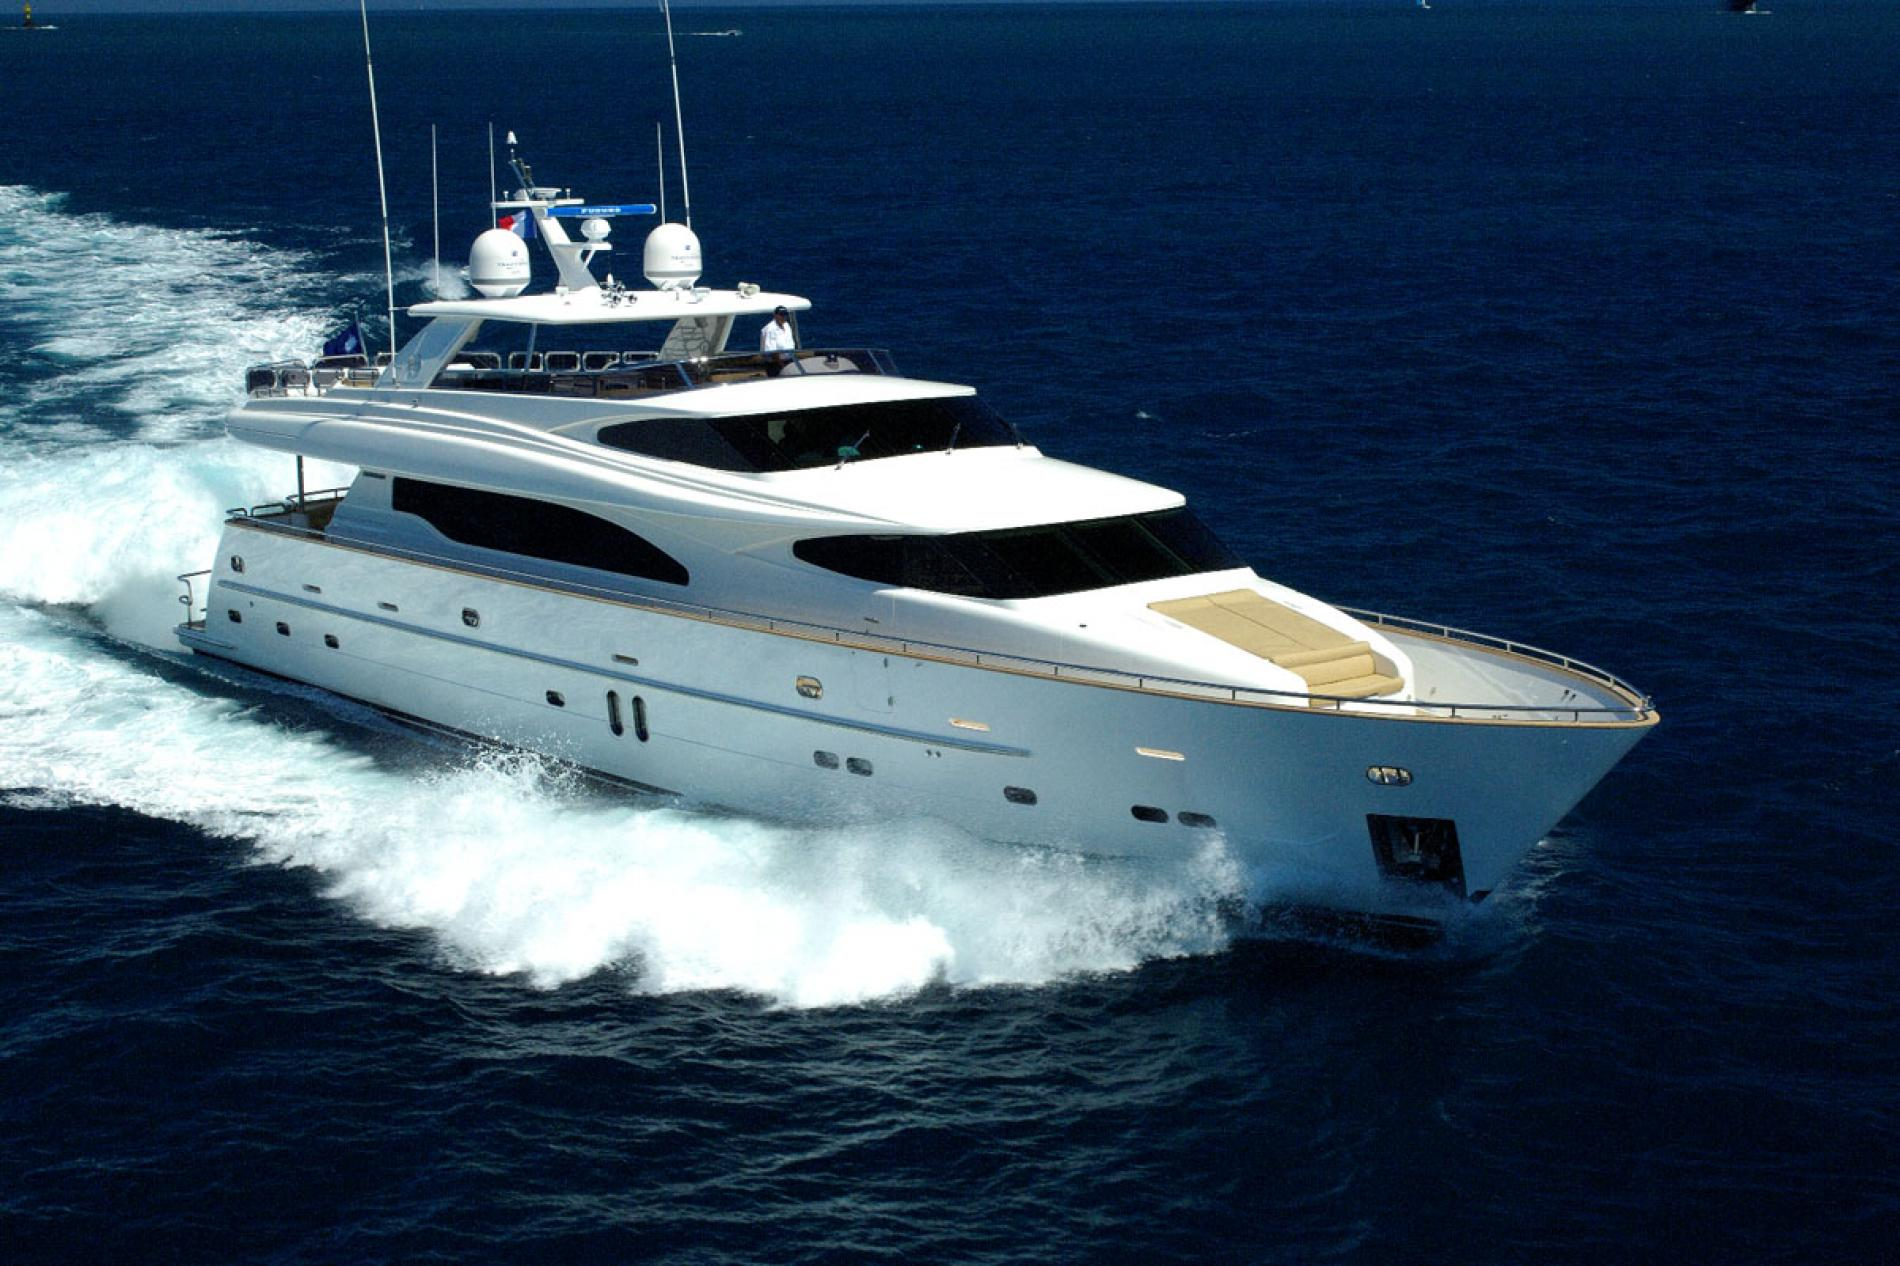 TRIPLE 888 - Luxury Motor Yacht For Sale - Exterior Design - Img 1 | C&N